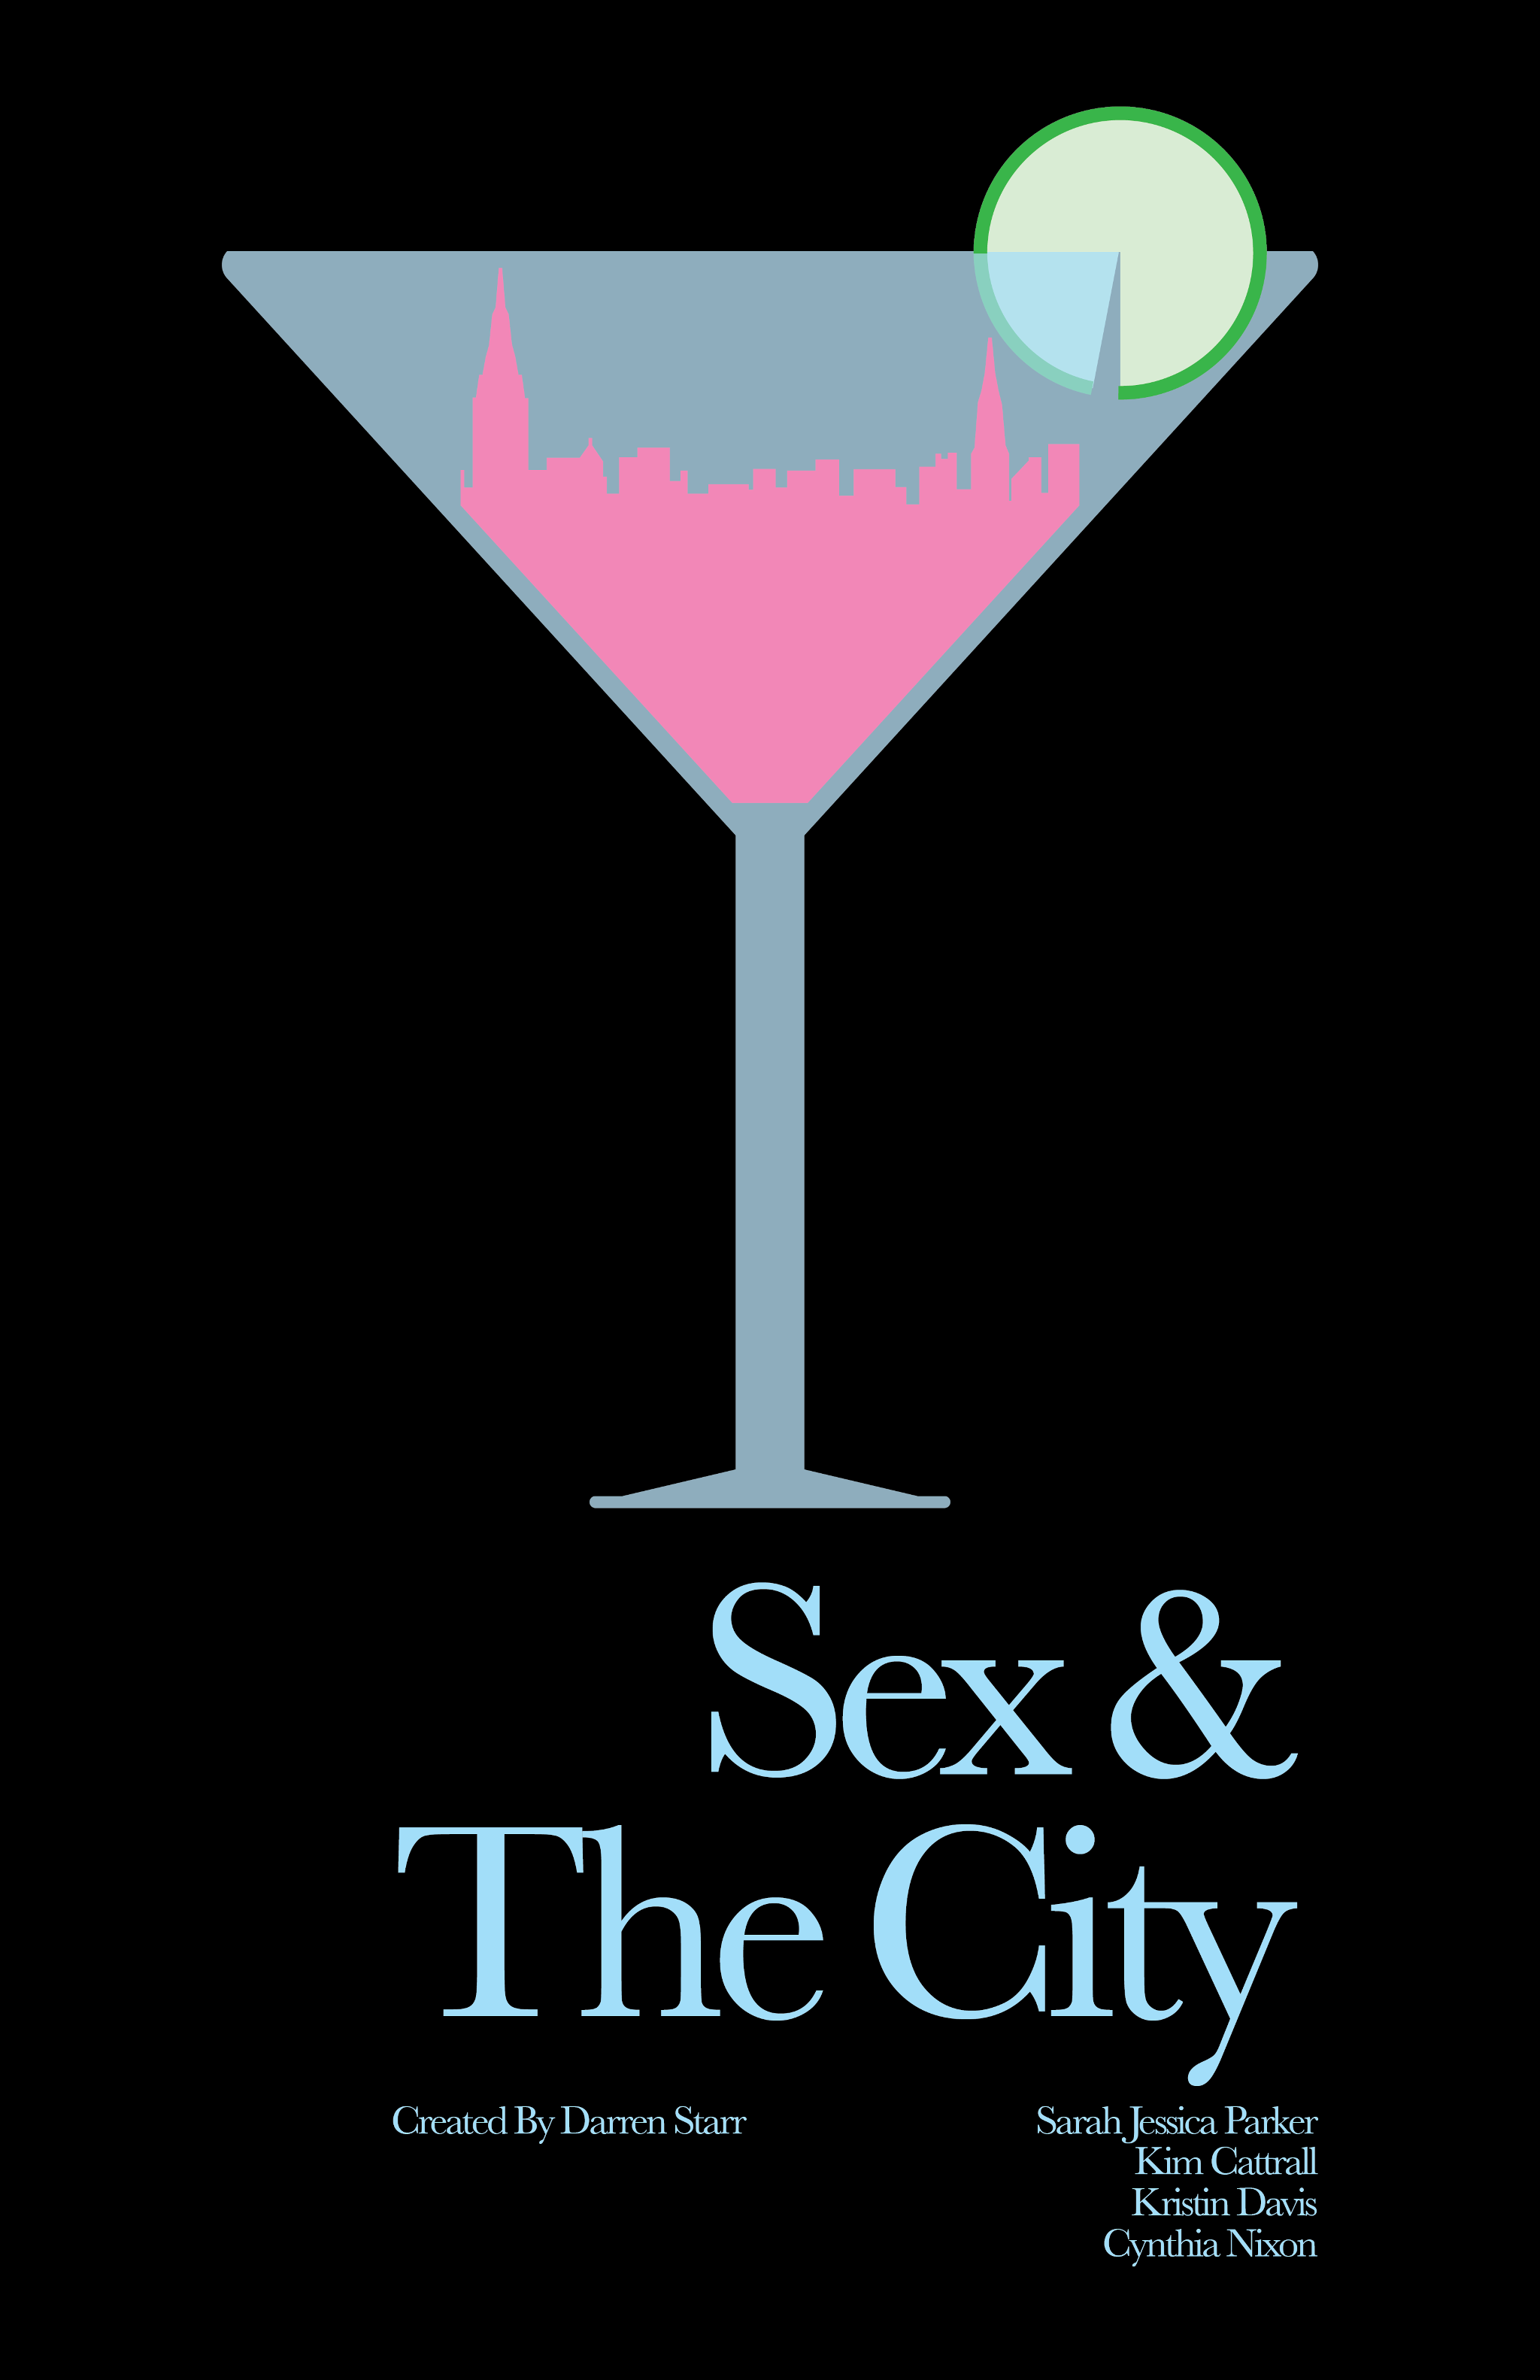 Sex in the city sky line